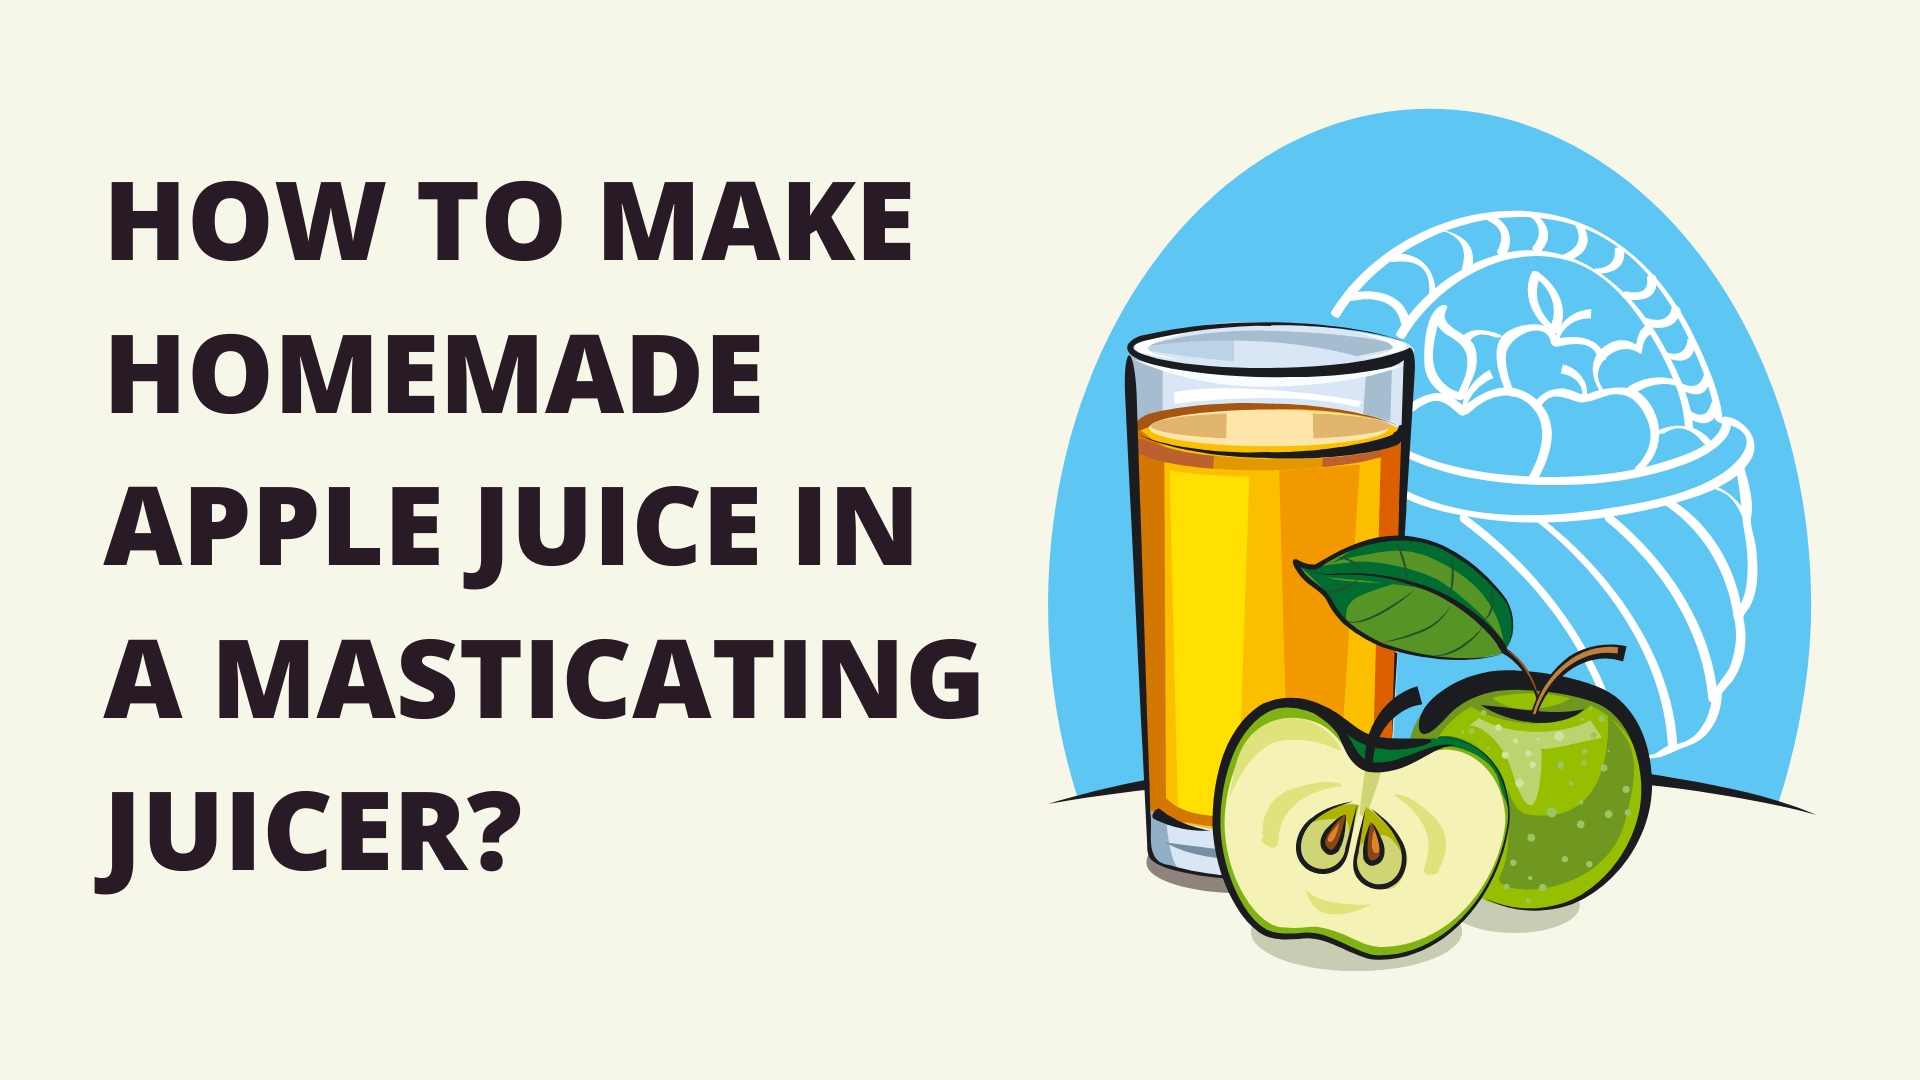 How to make homemade Apple juice in a Masticating juicer